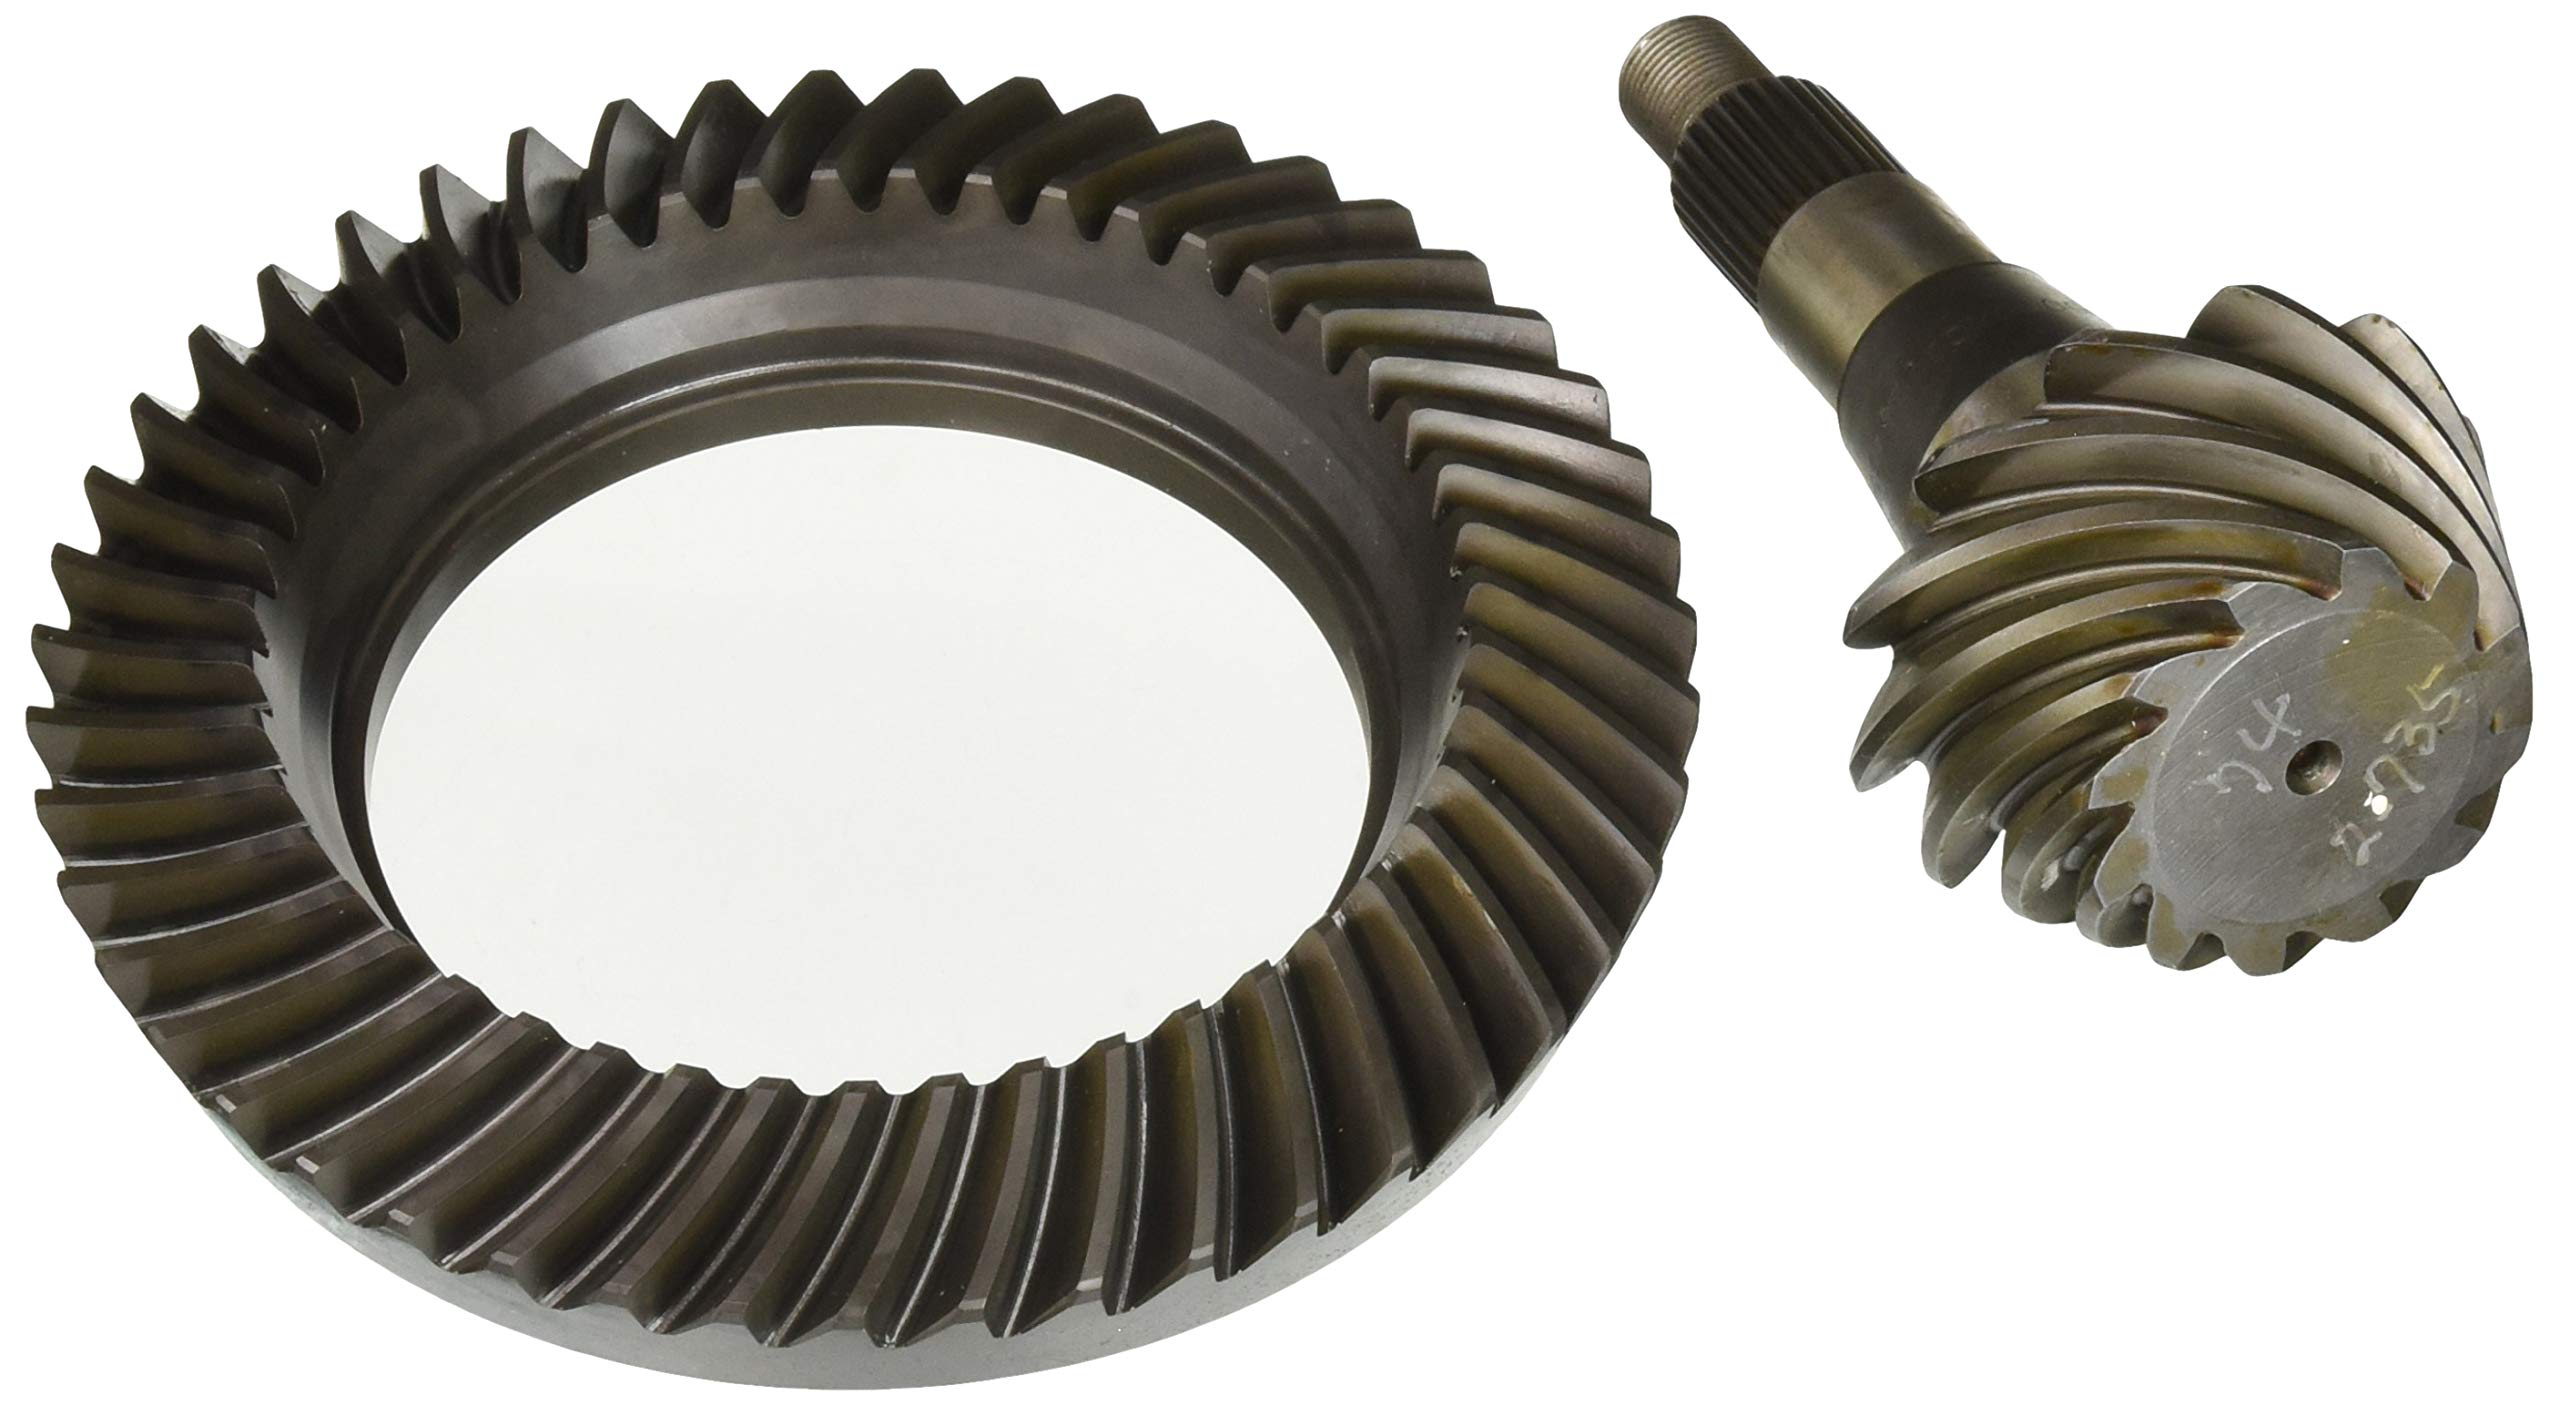 Motive Gear C9.25-392 3.92 Ratio Differential Ring and Pinion for 9.25 in (12 Bolt)